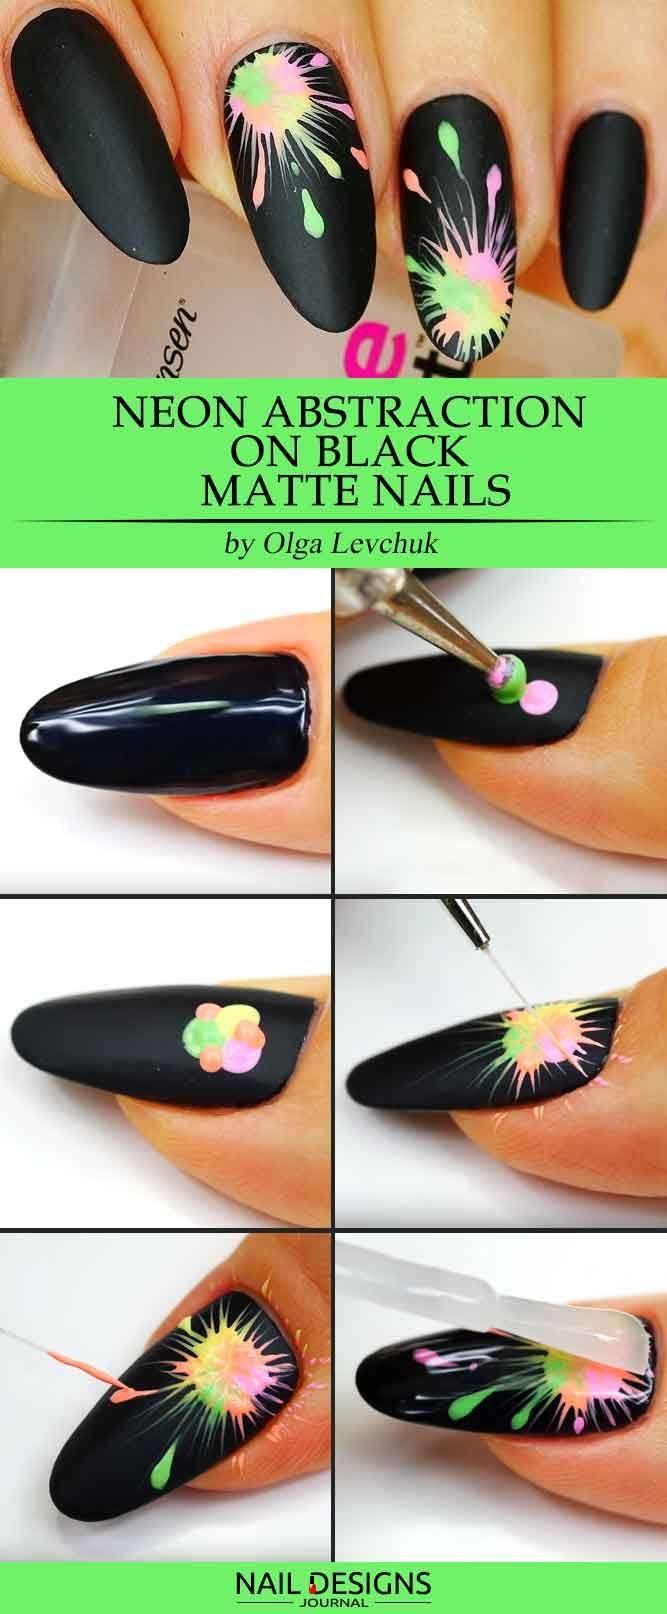 8 Easy Tutorials Different Nail Designs Step By Step Matte Nails